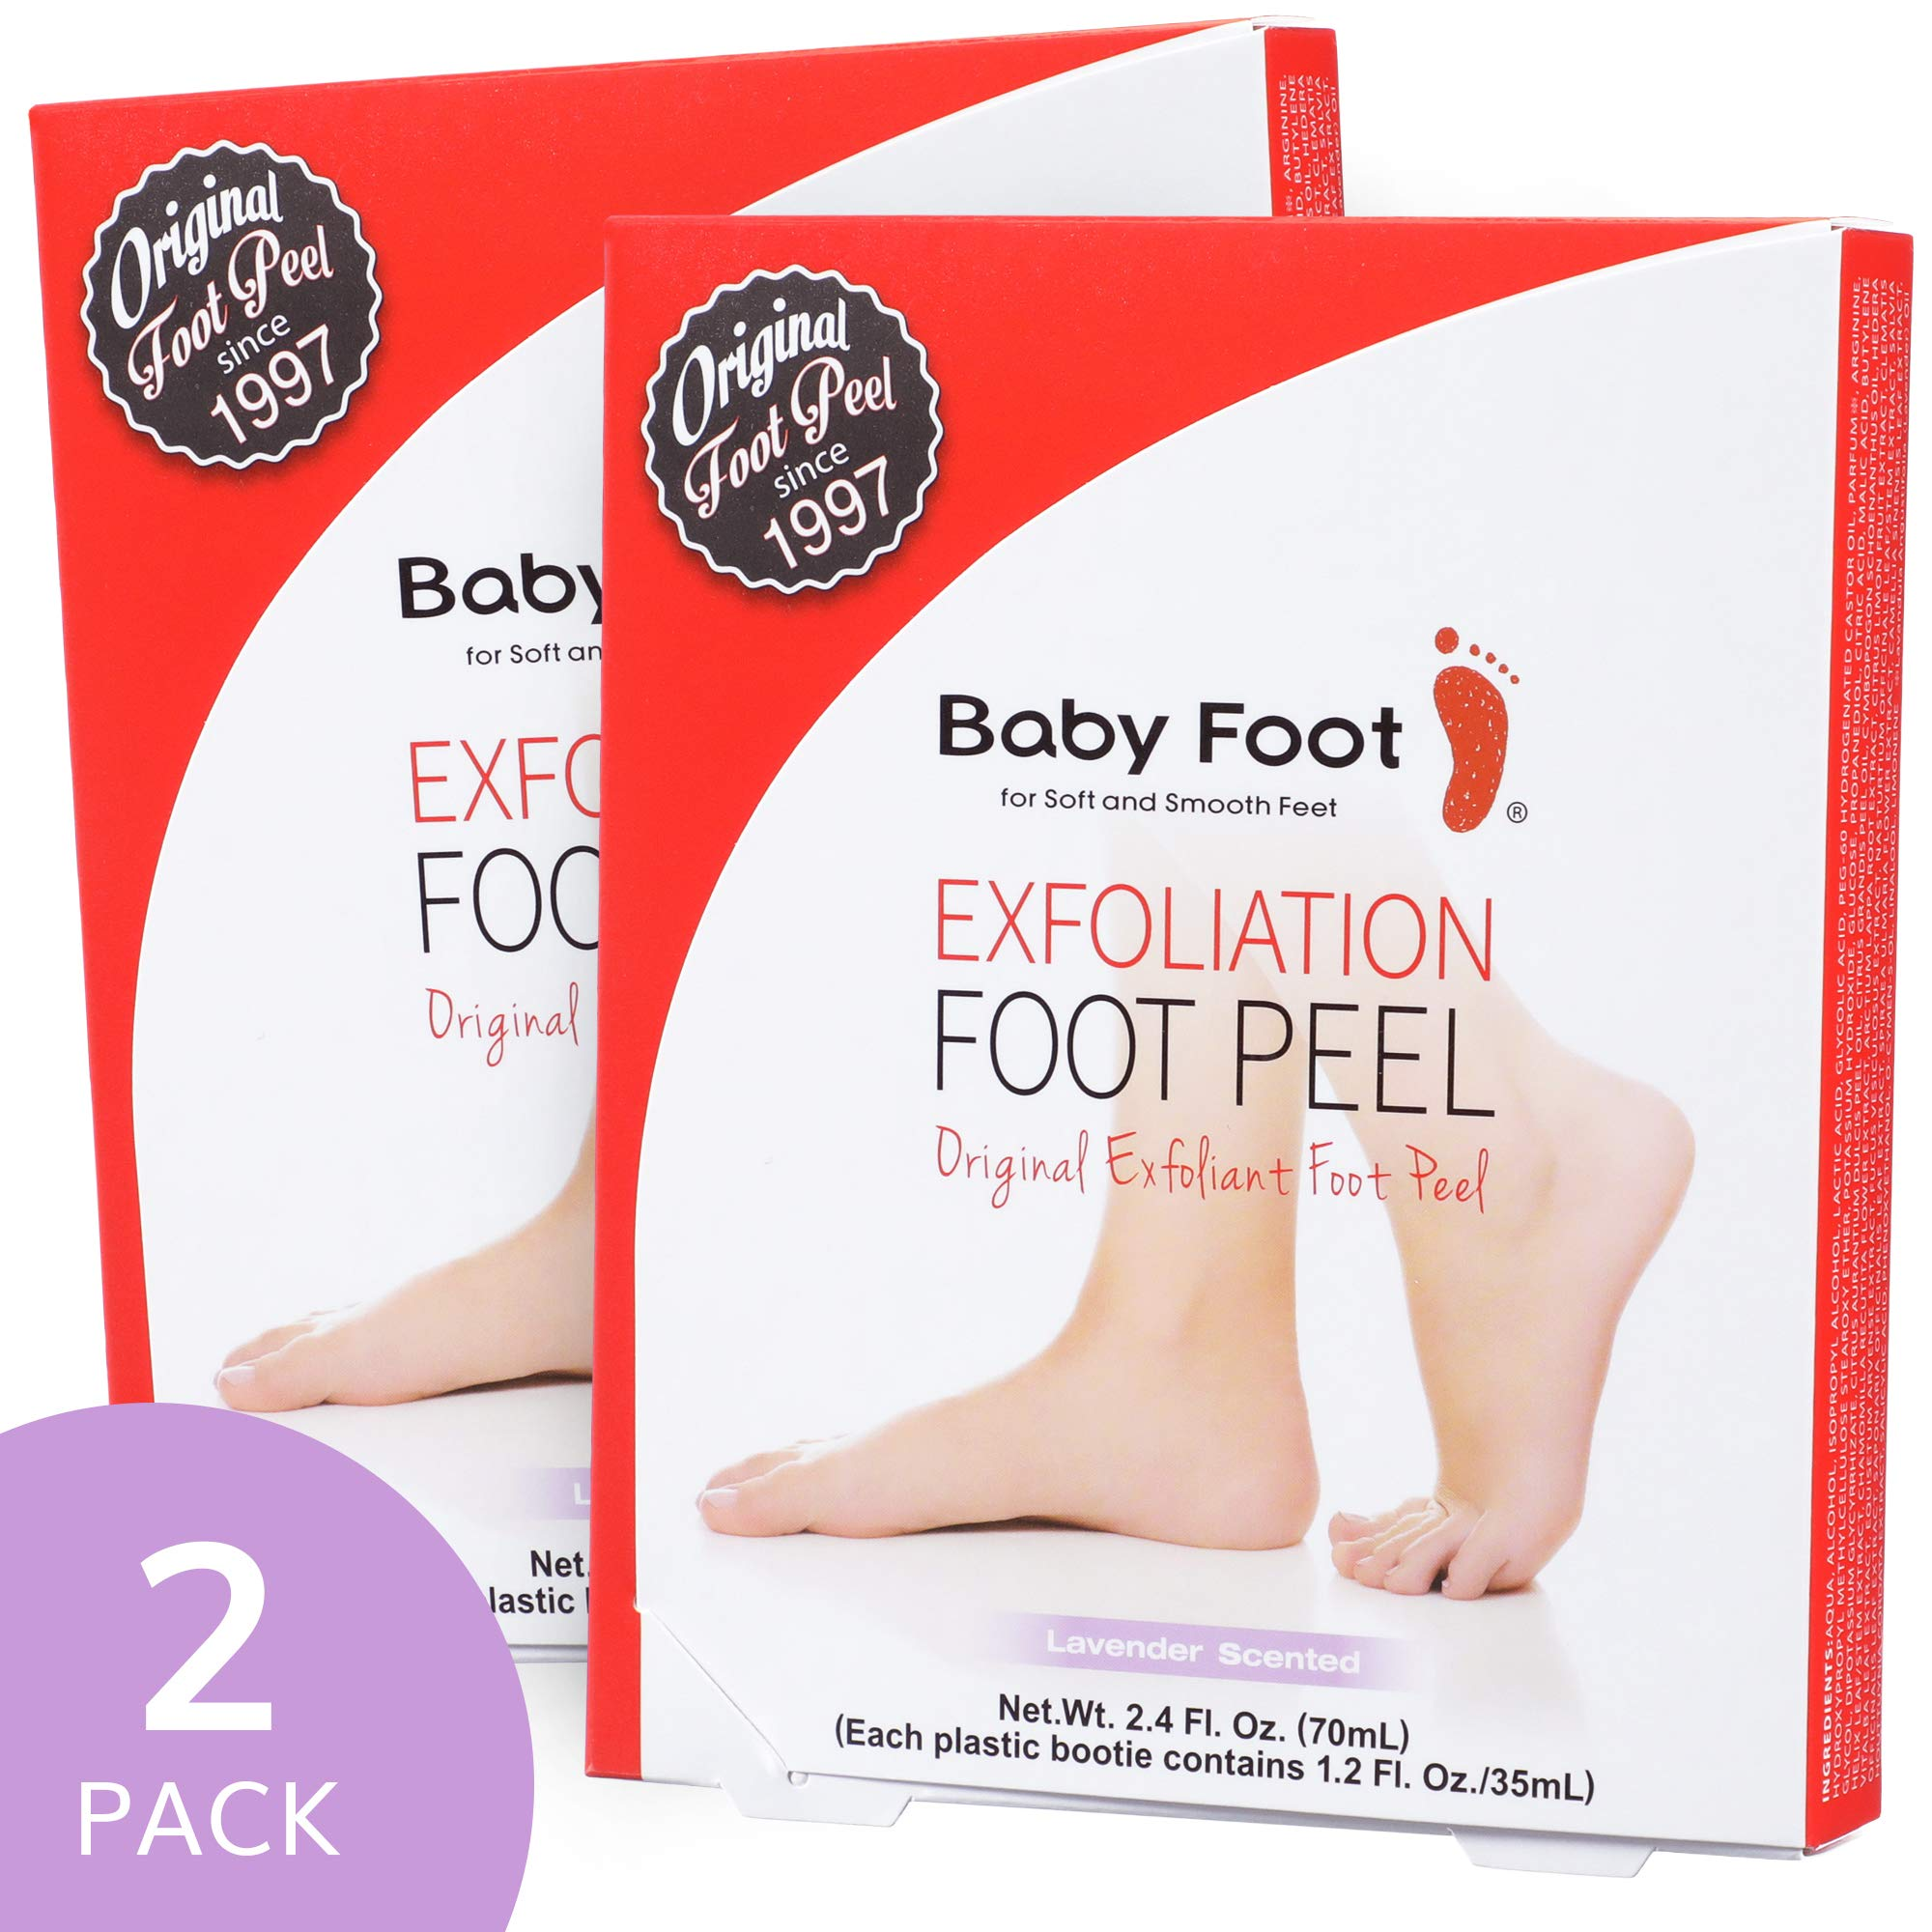 Baby Foot Exfoliant Foot Peel, Lavender Scented, 2.4 Fluid Ounce (Pack of 2)